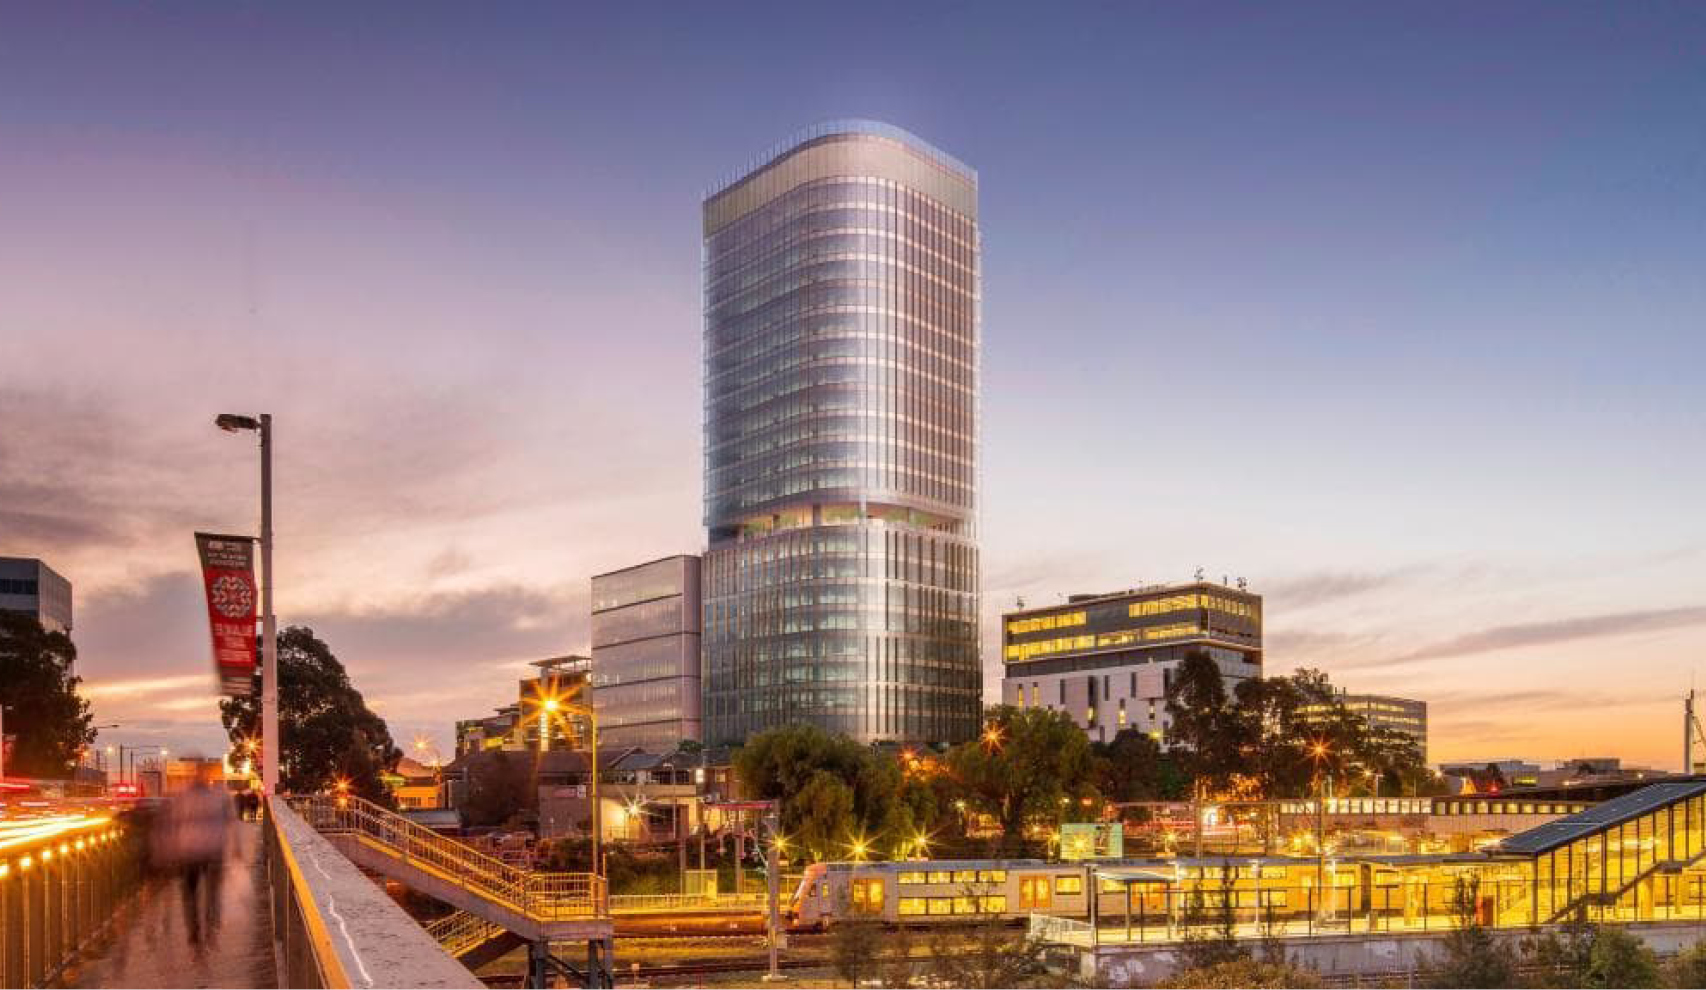 Liverpool Quarter, MackyCorp, Liverpool Growth, Investment Opportunity, Western Sydney Growth, Liverpool Property, Third CBD, Liverpool CBD, Property Development